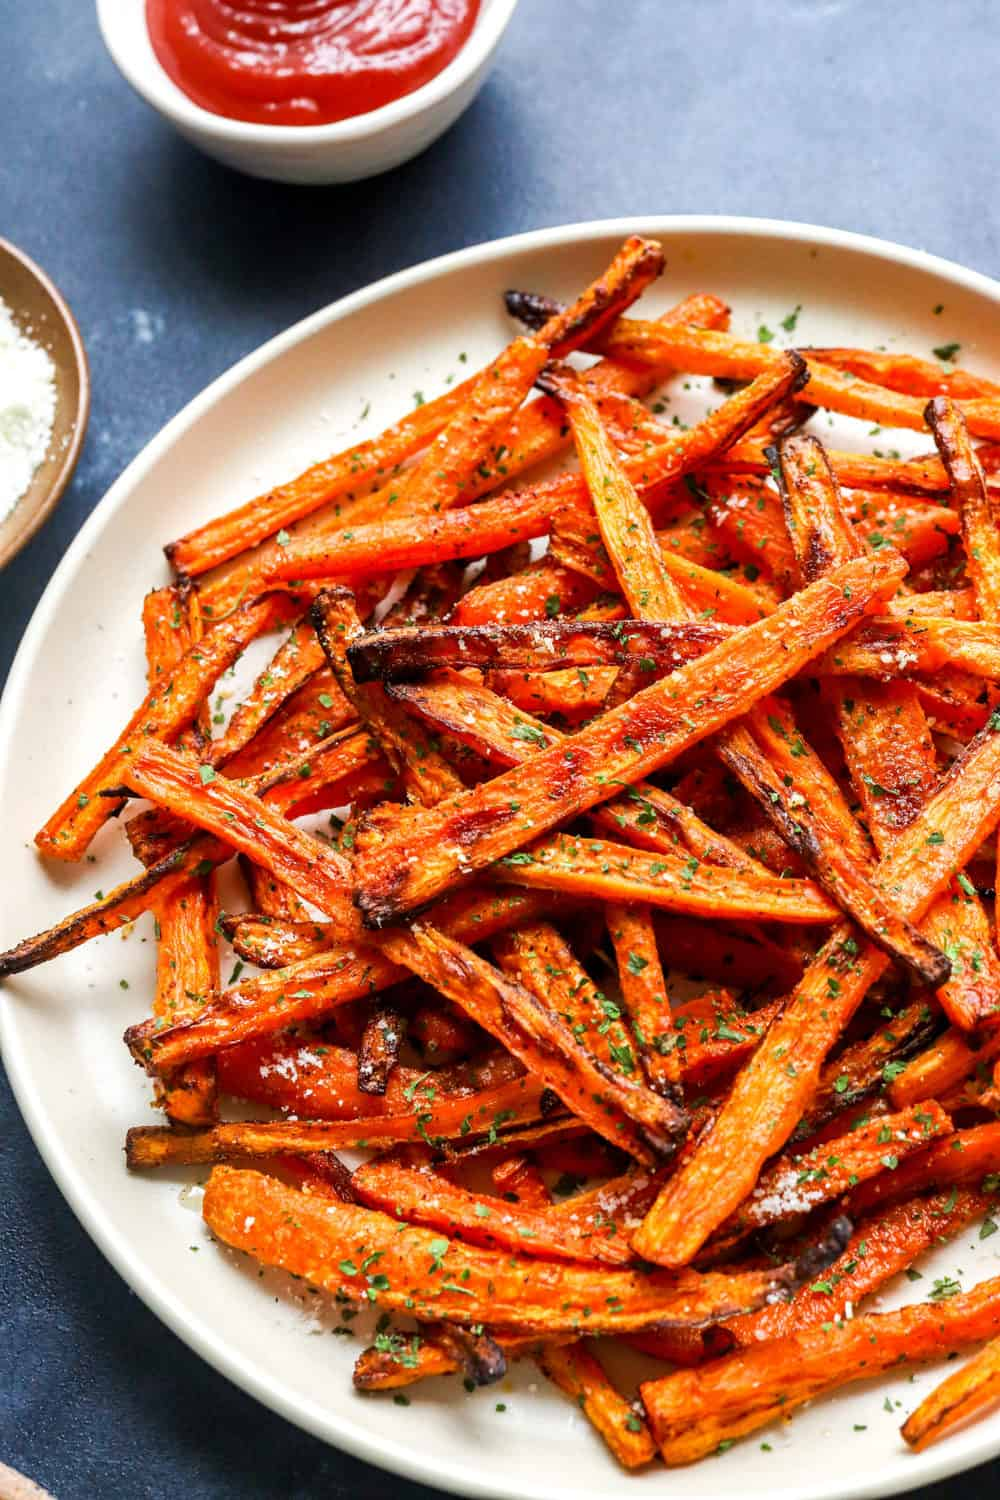 carrot sticks that have been cooked on plate in a criss cross pattern with shredded parsley on them and ketchup in a bowl behind them.